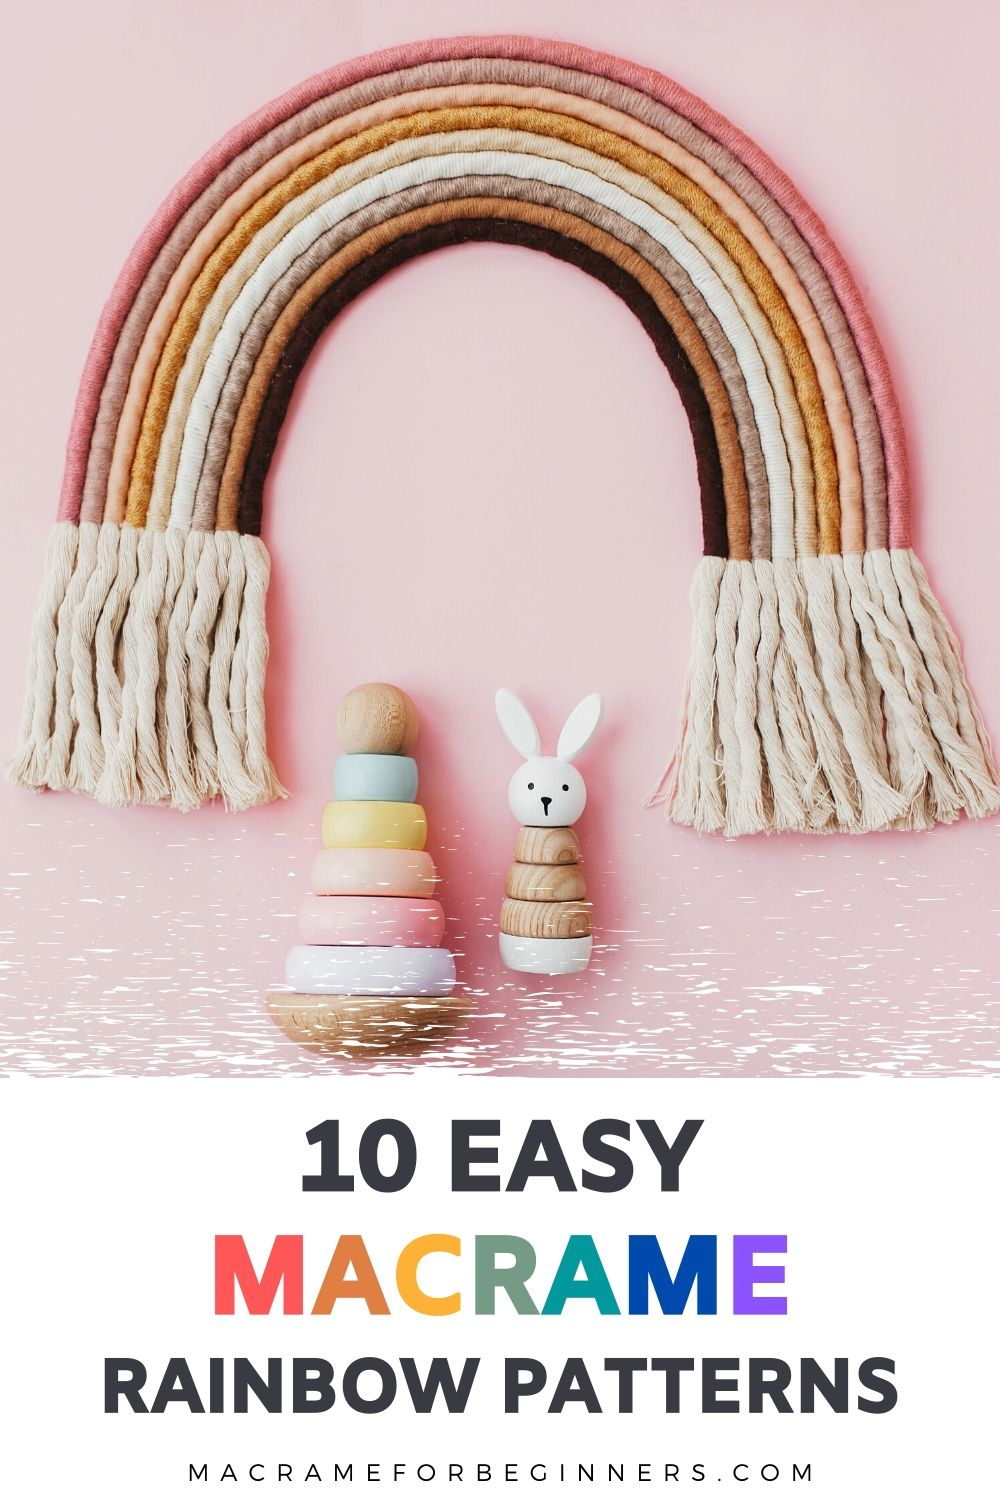 10 x Easy Macrame Rainbow DIY Wall Hanging Tutorials